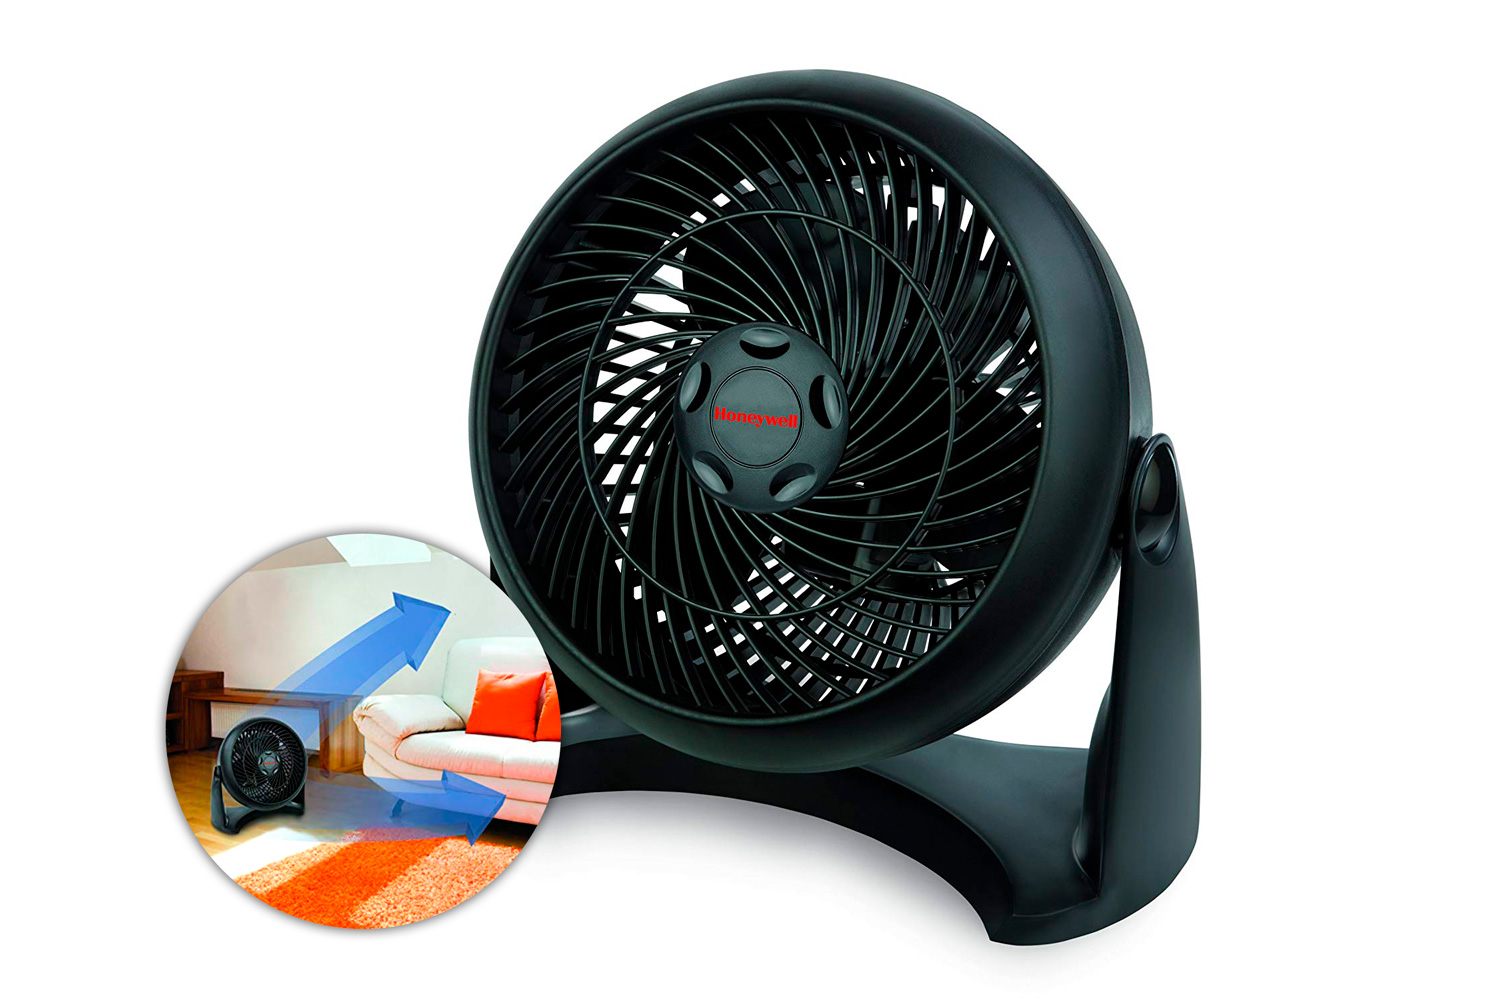 Honeywell HT900E Turbo Fan